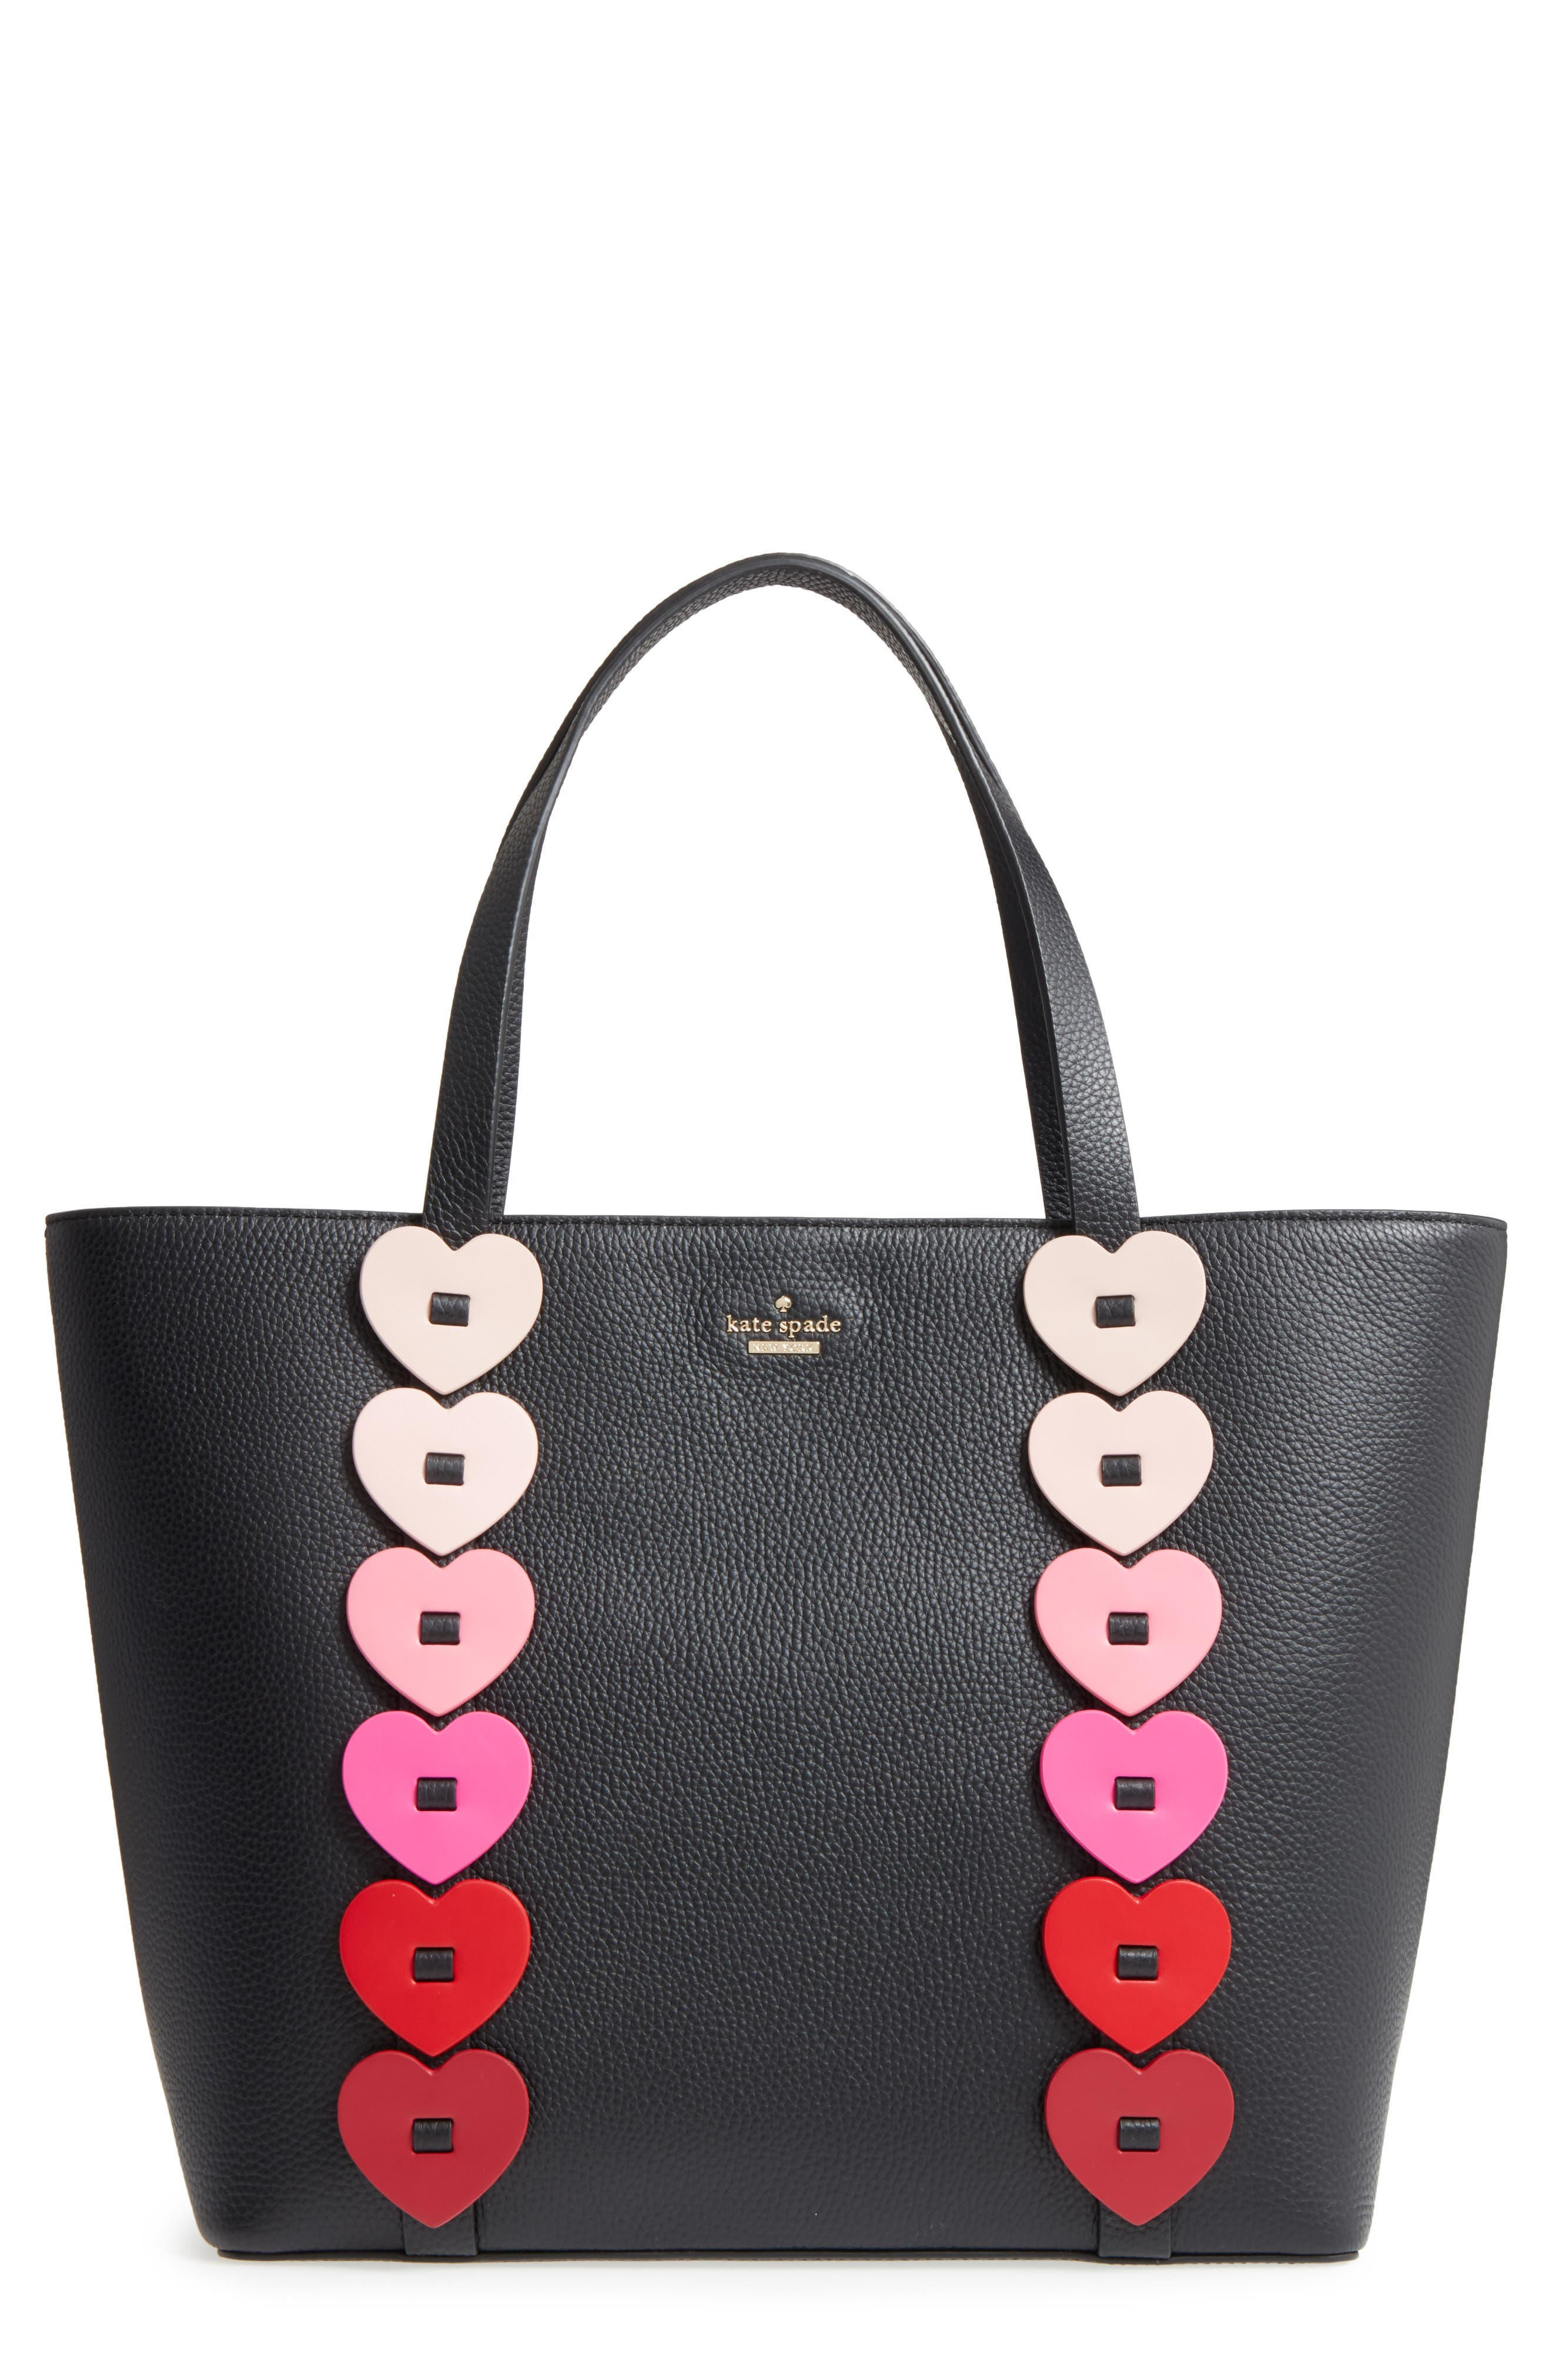 Main Image - kate spade new york yours truly - ombré heart leather tote